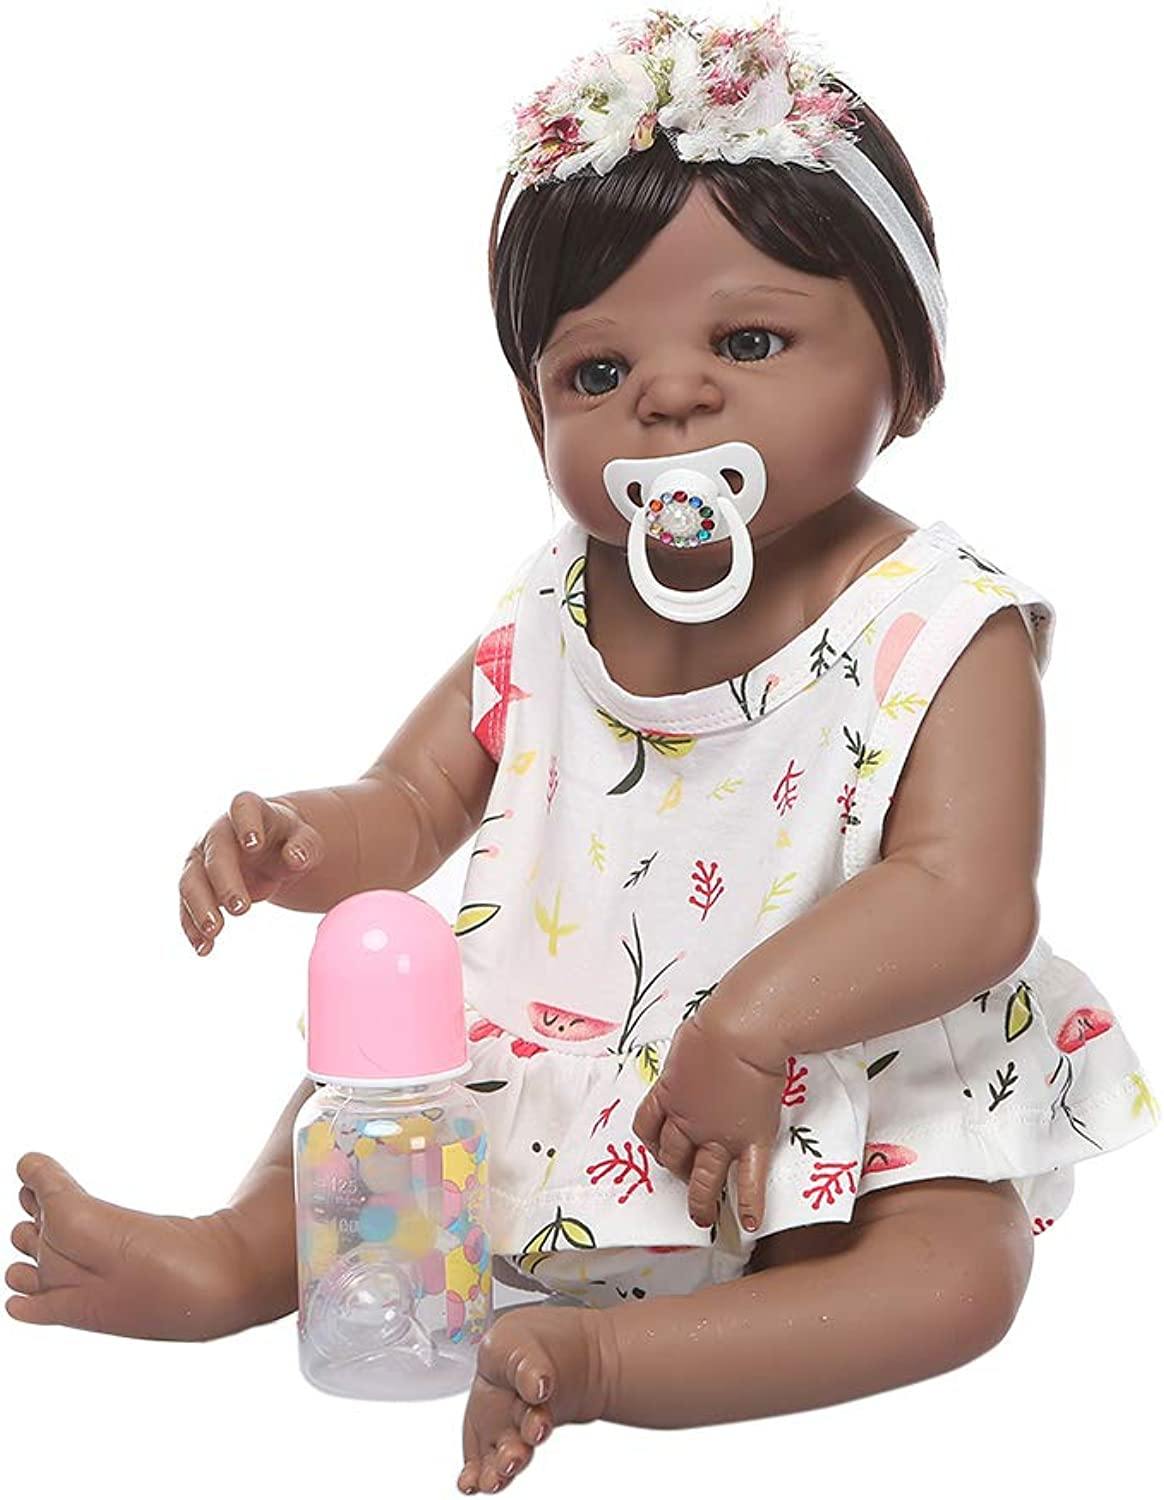 Ludzzi 22'' Reborn Doll Realistic Silicone Vinyl Newborn Babies Toy Girl Princess Floral Clothes Pacifier Lifelike Handmade Gift As A Surprise